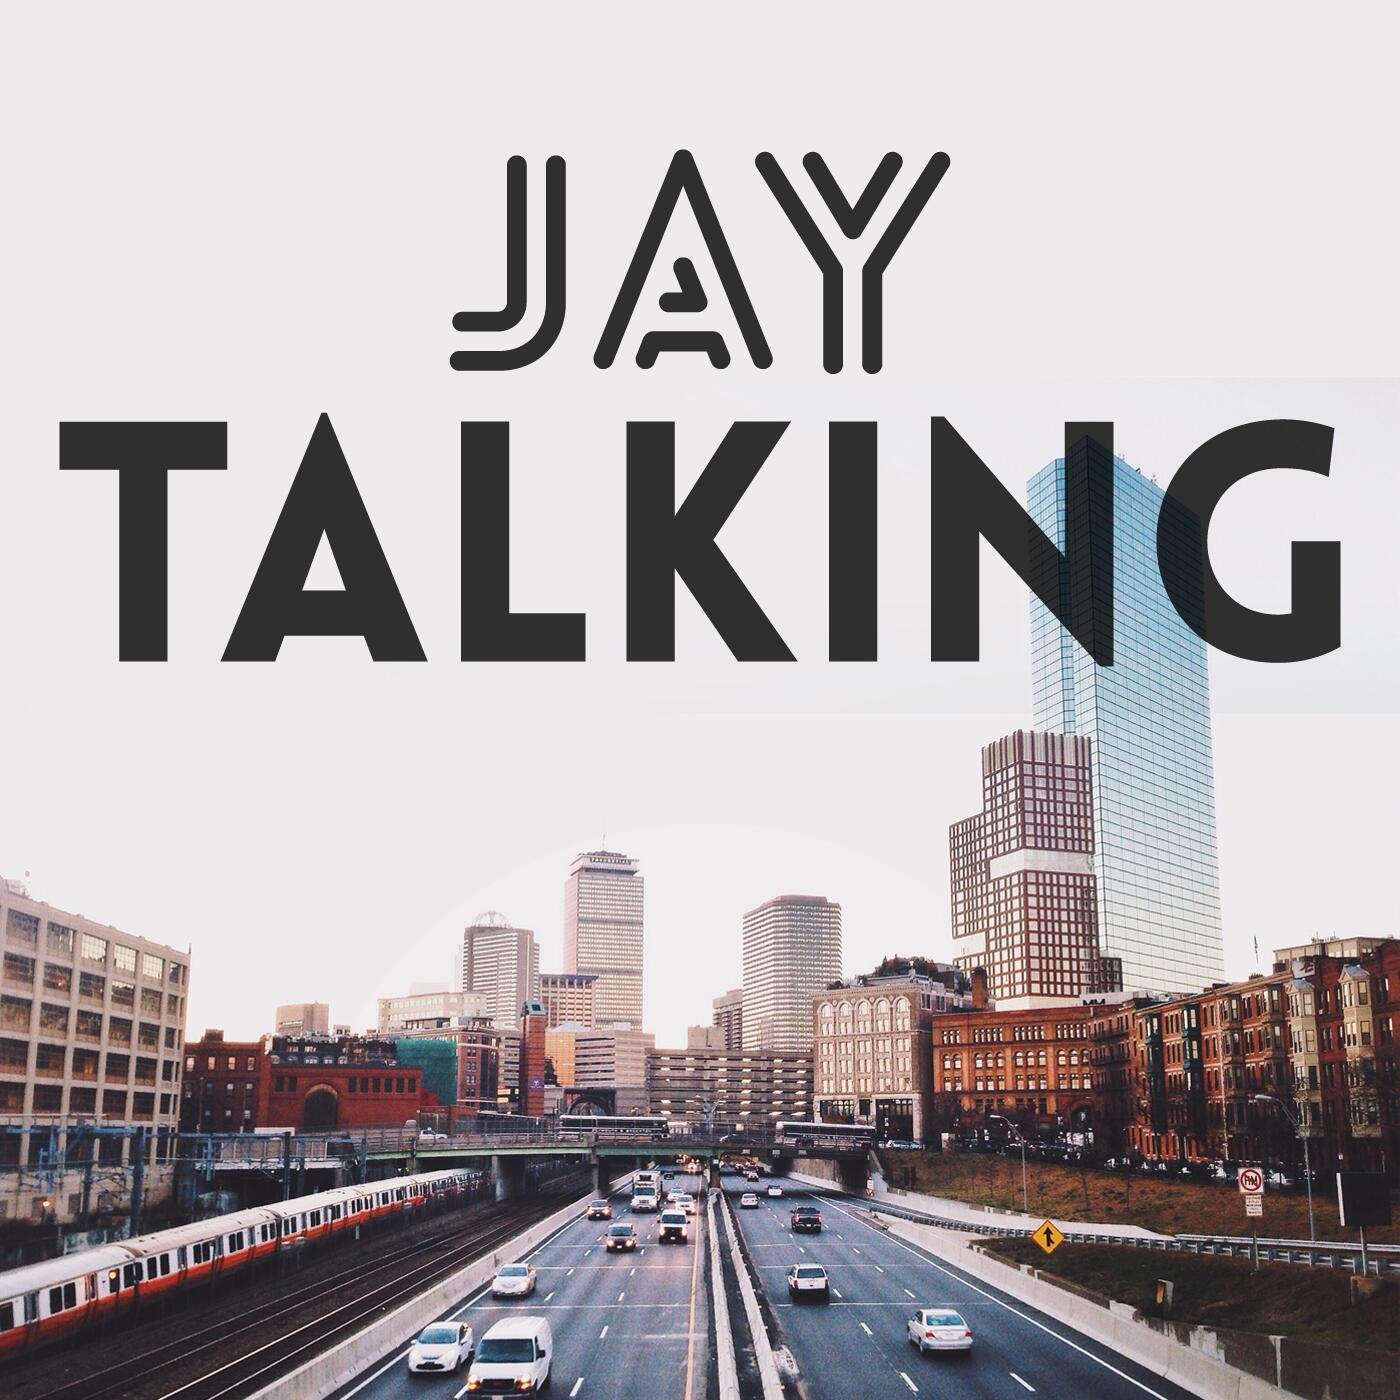 Listen to the Jay Talking Episode - Mayflower Comes Home on iHeartRadio | iHeartRadio